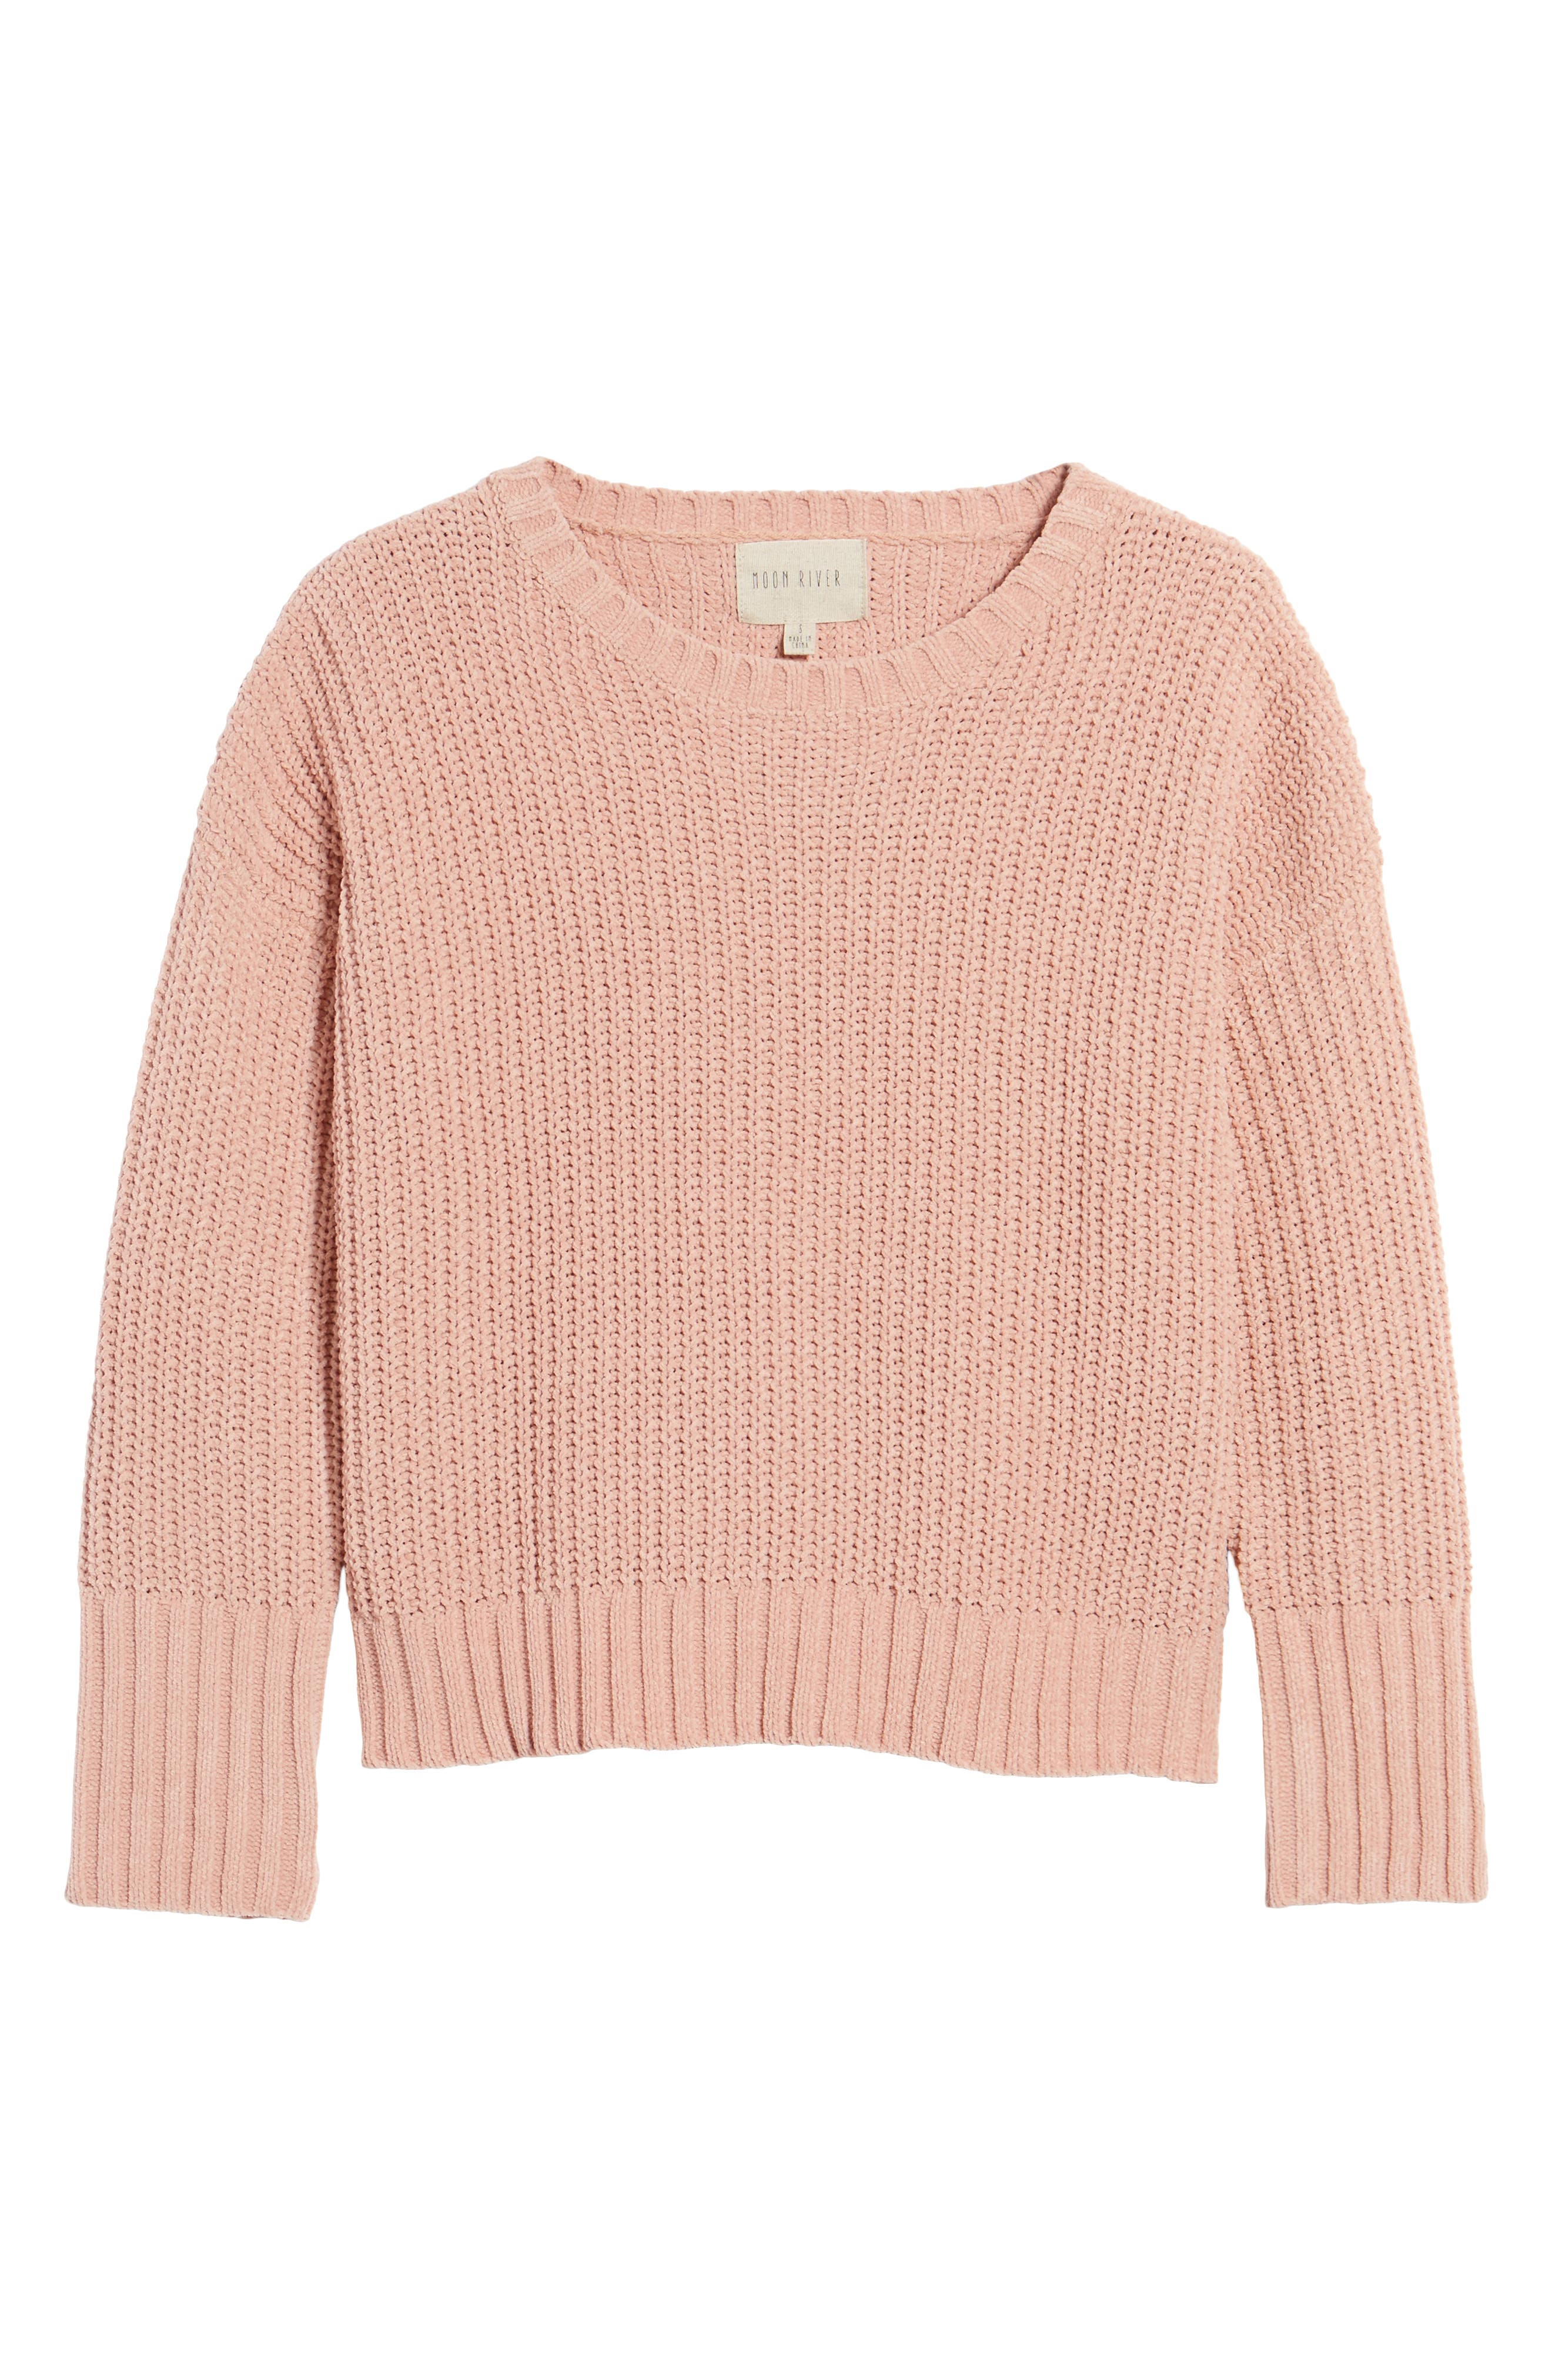 Drop Shoulder Chunky Knit Sweater,                             Alternate thumbnail 6, color,                             650